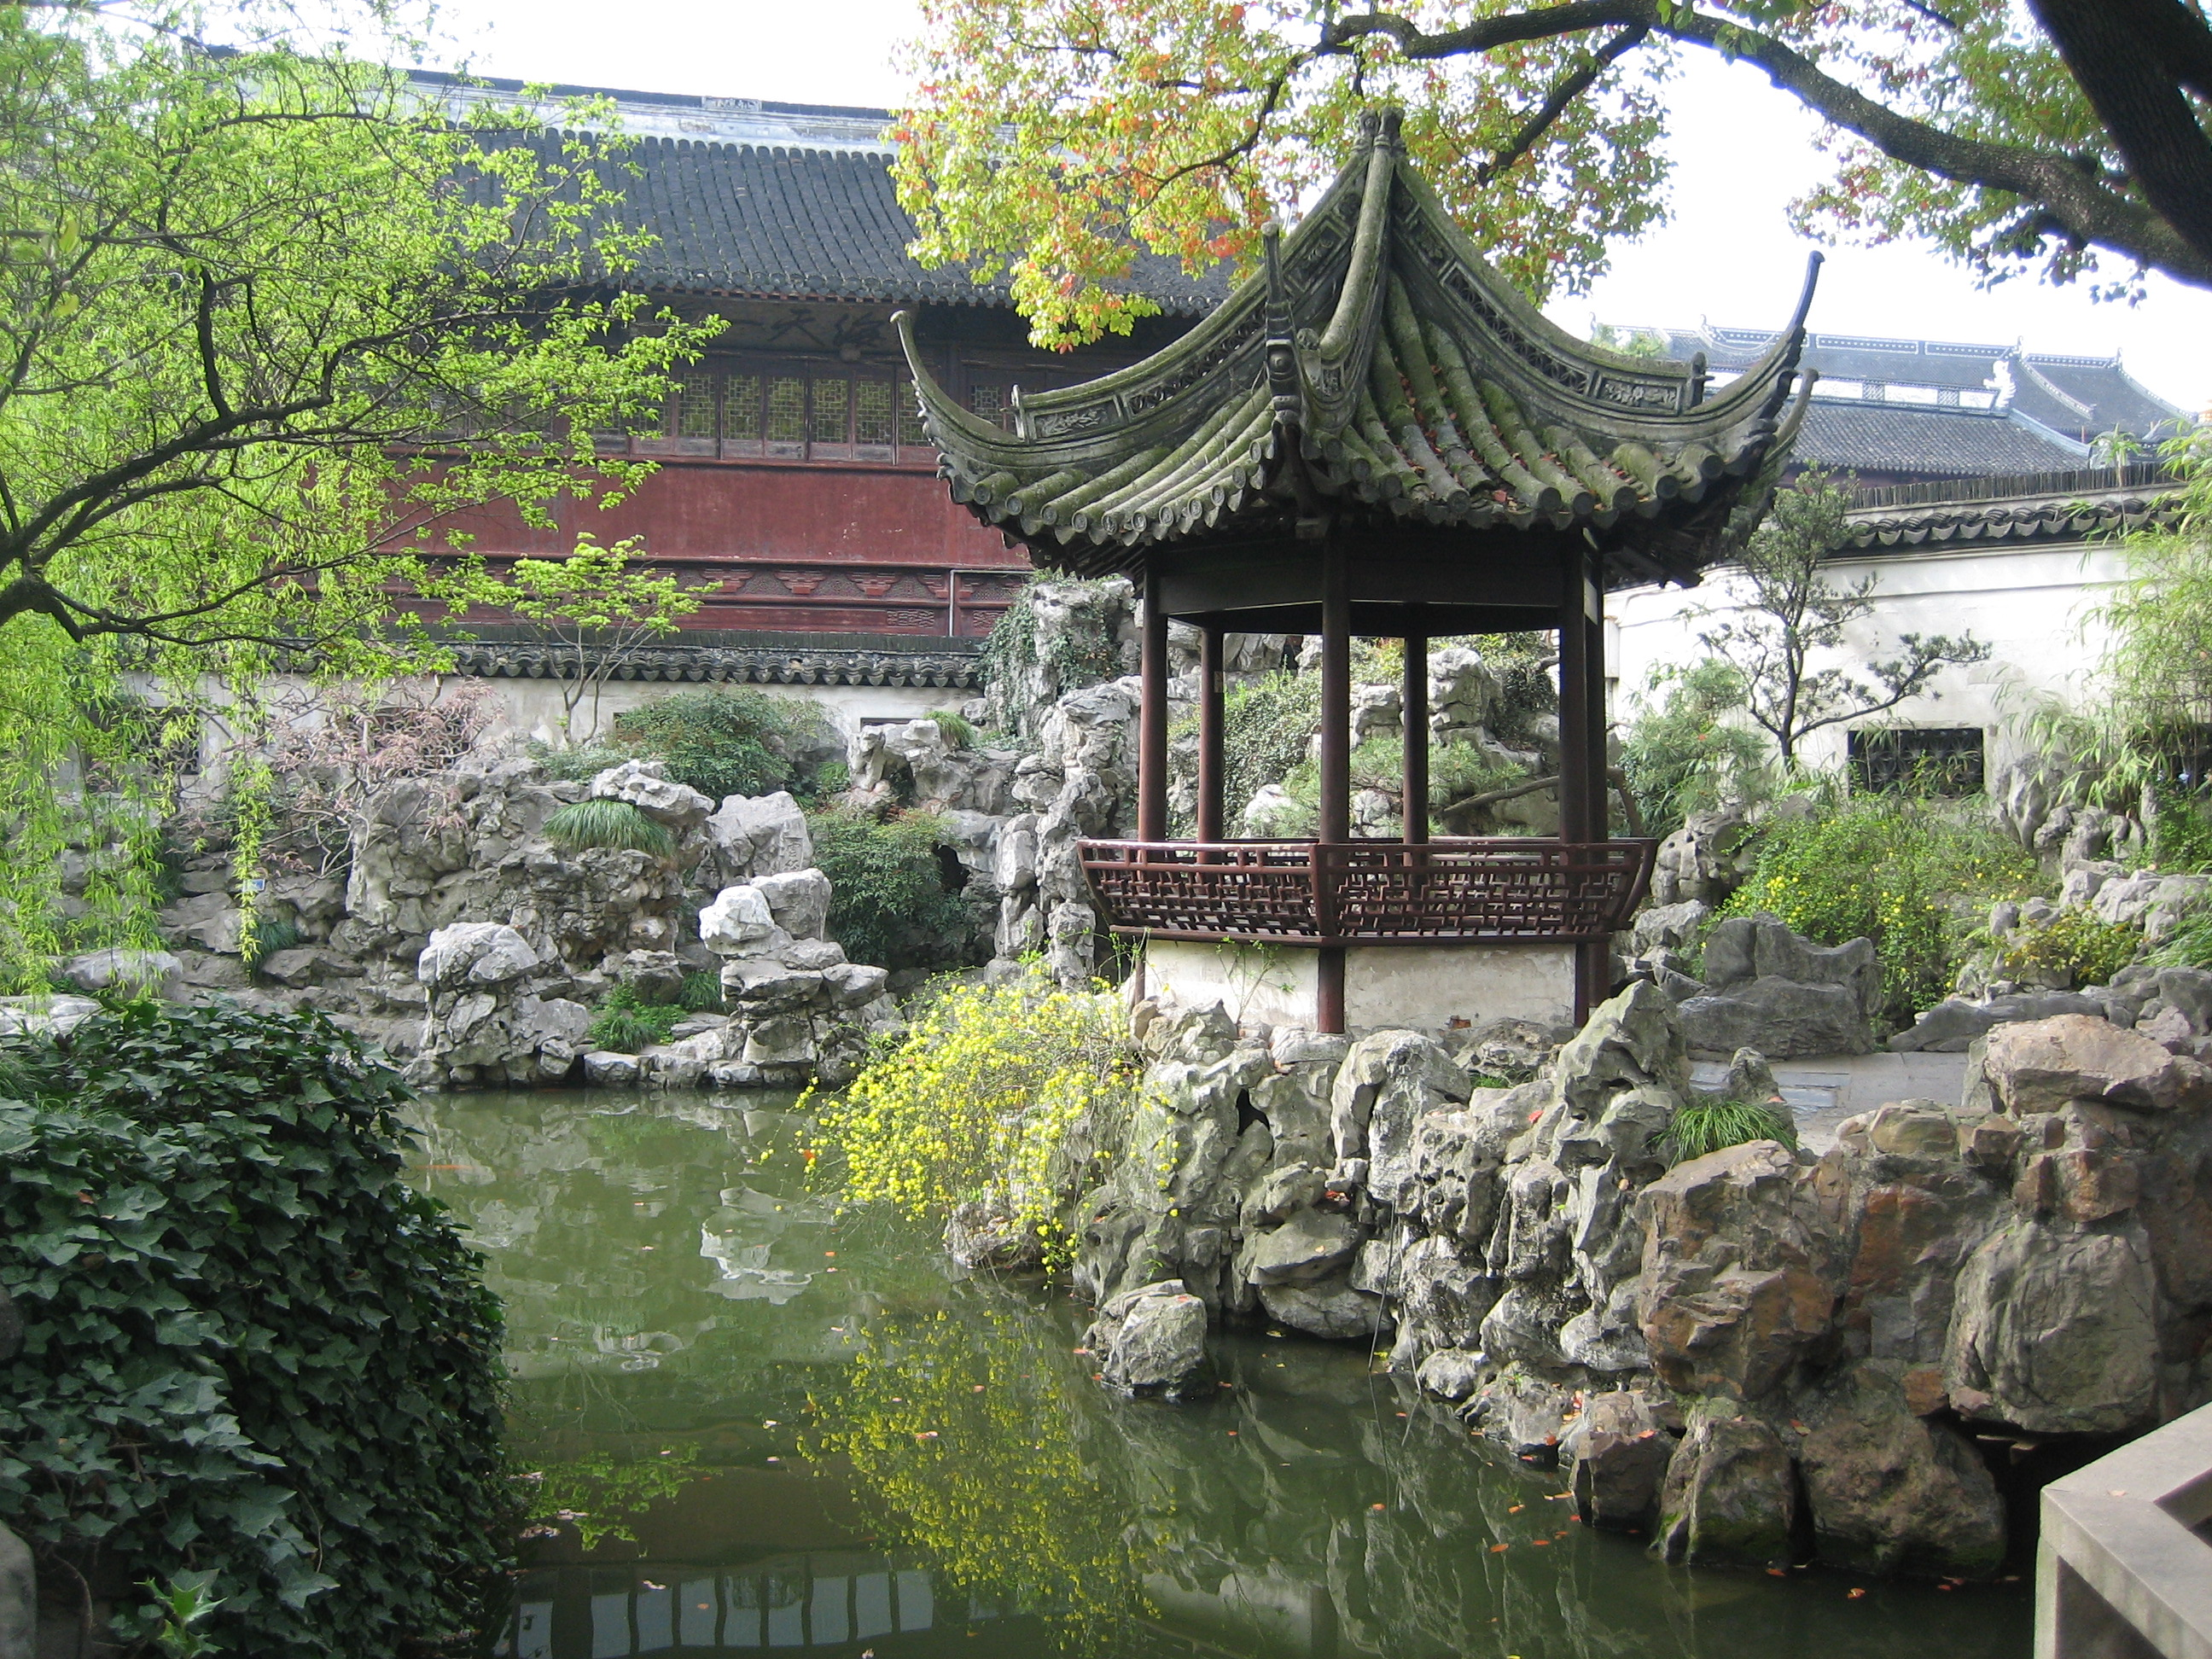 Yuyuan Garden Ancient Chinese Architecture in Old City Shanghai